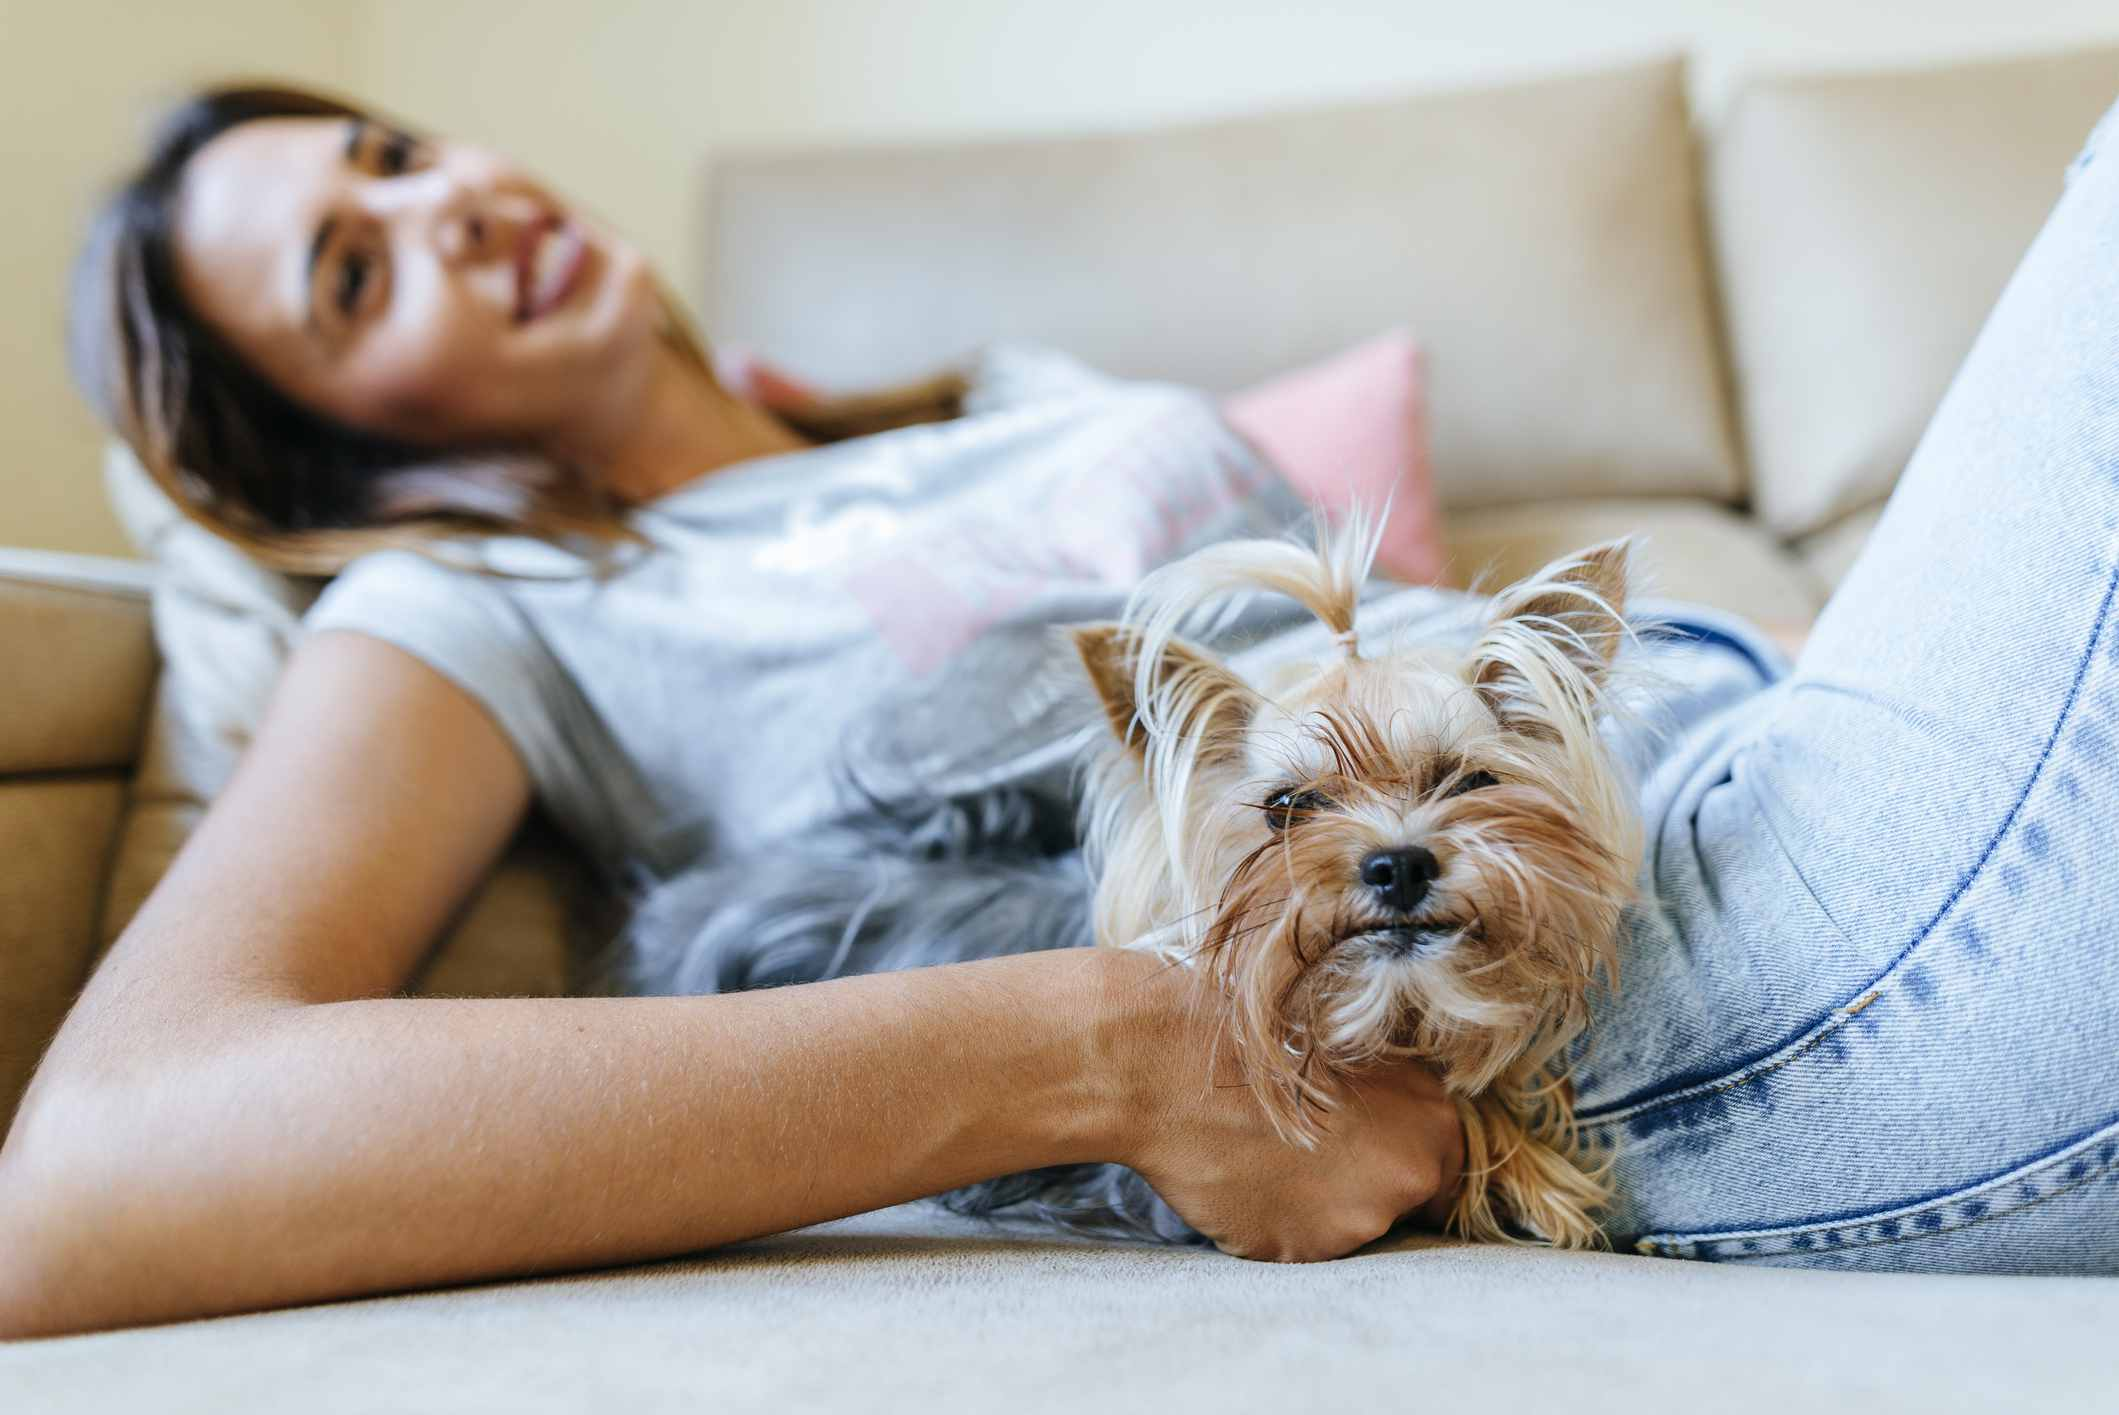 Yorkie and owner on couch